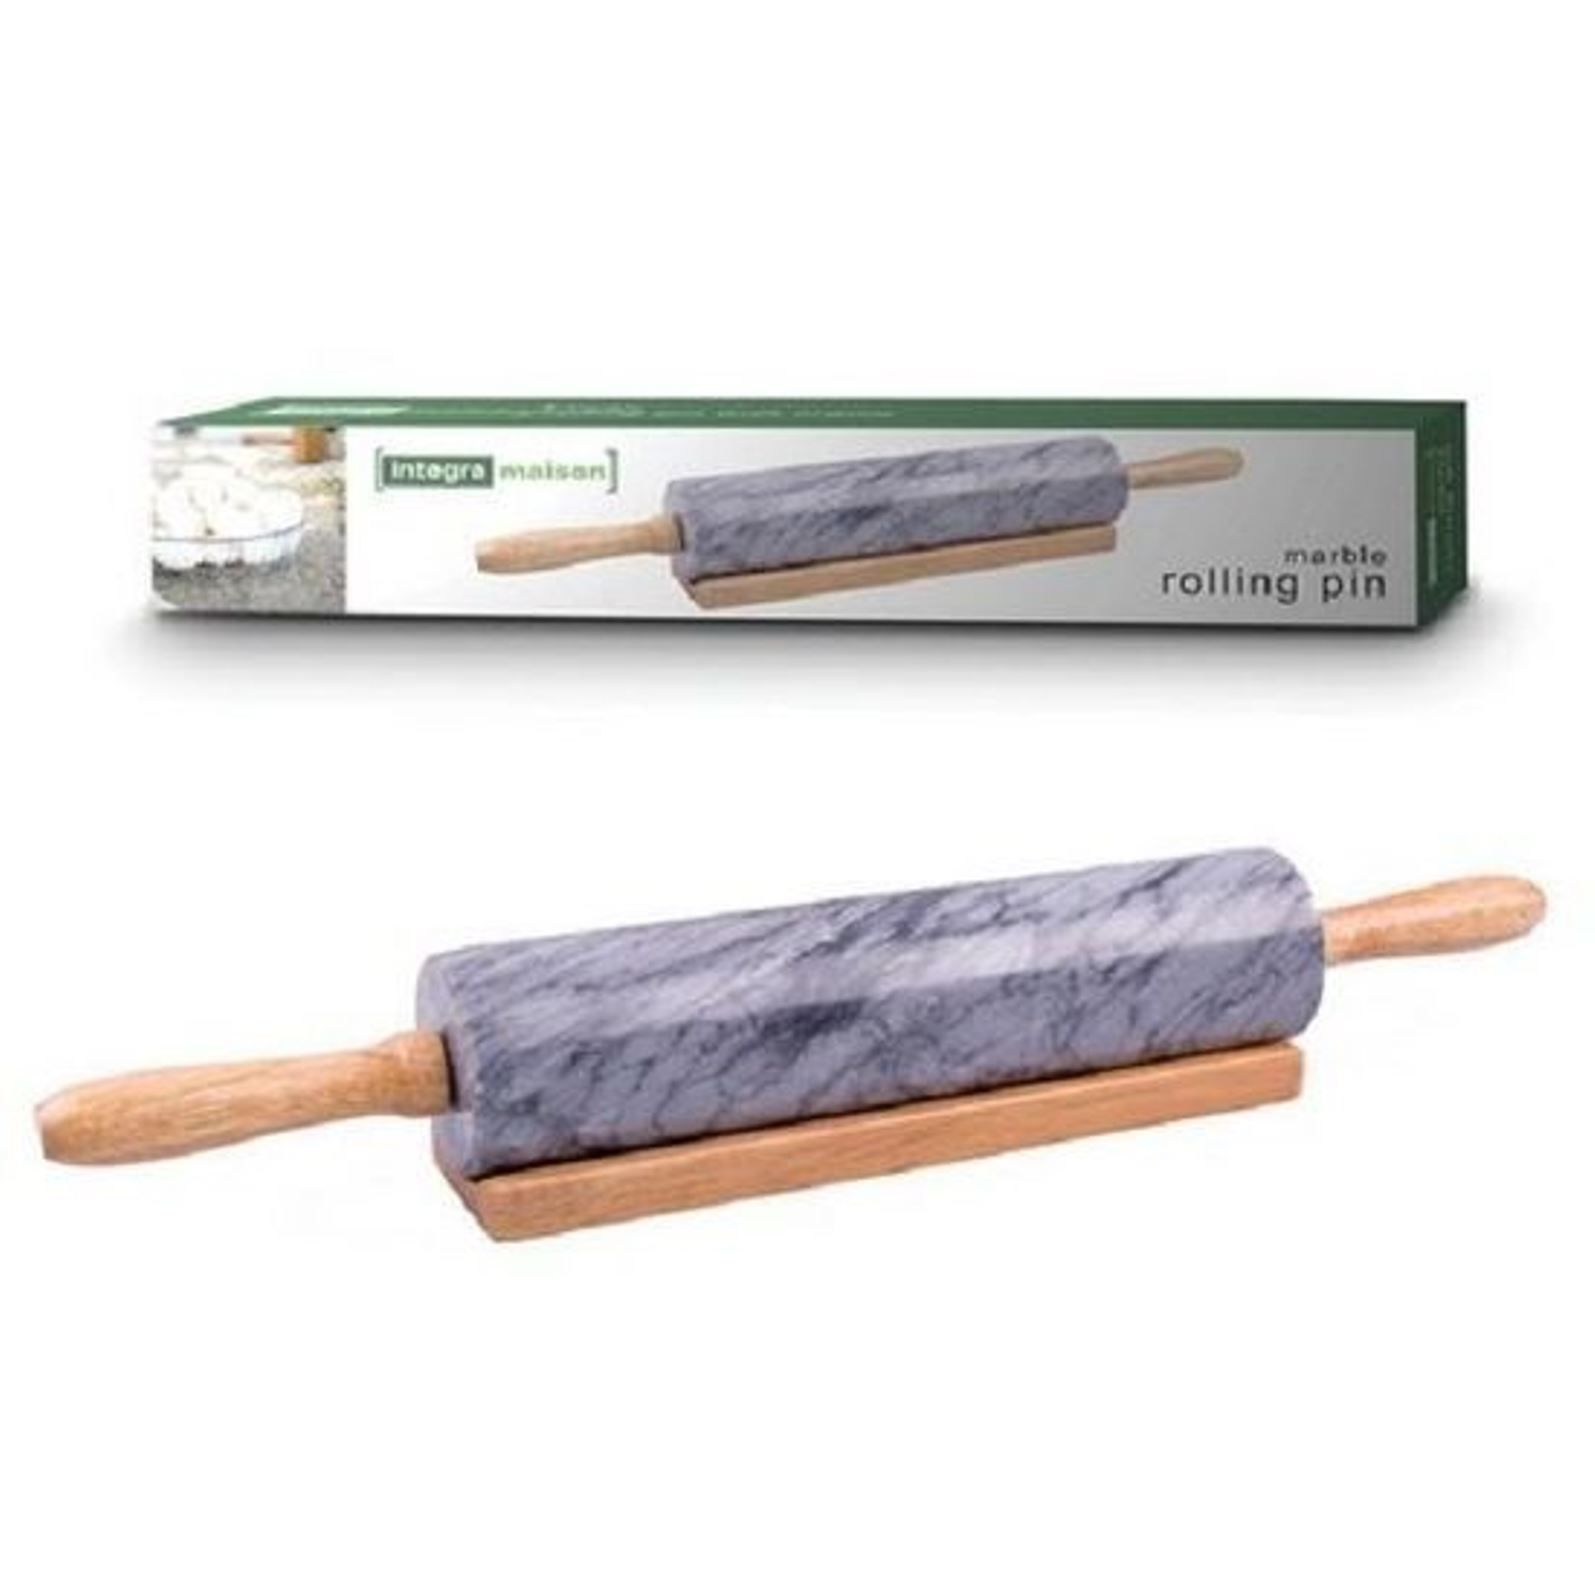 INTEGRA MAISON MARBLE ROLLING PIN WITH CRADLE